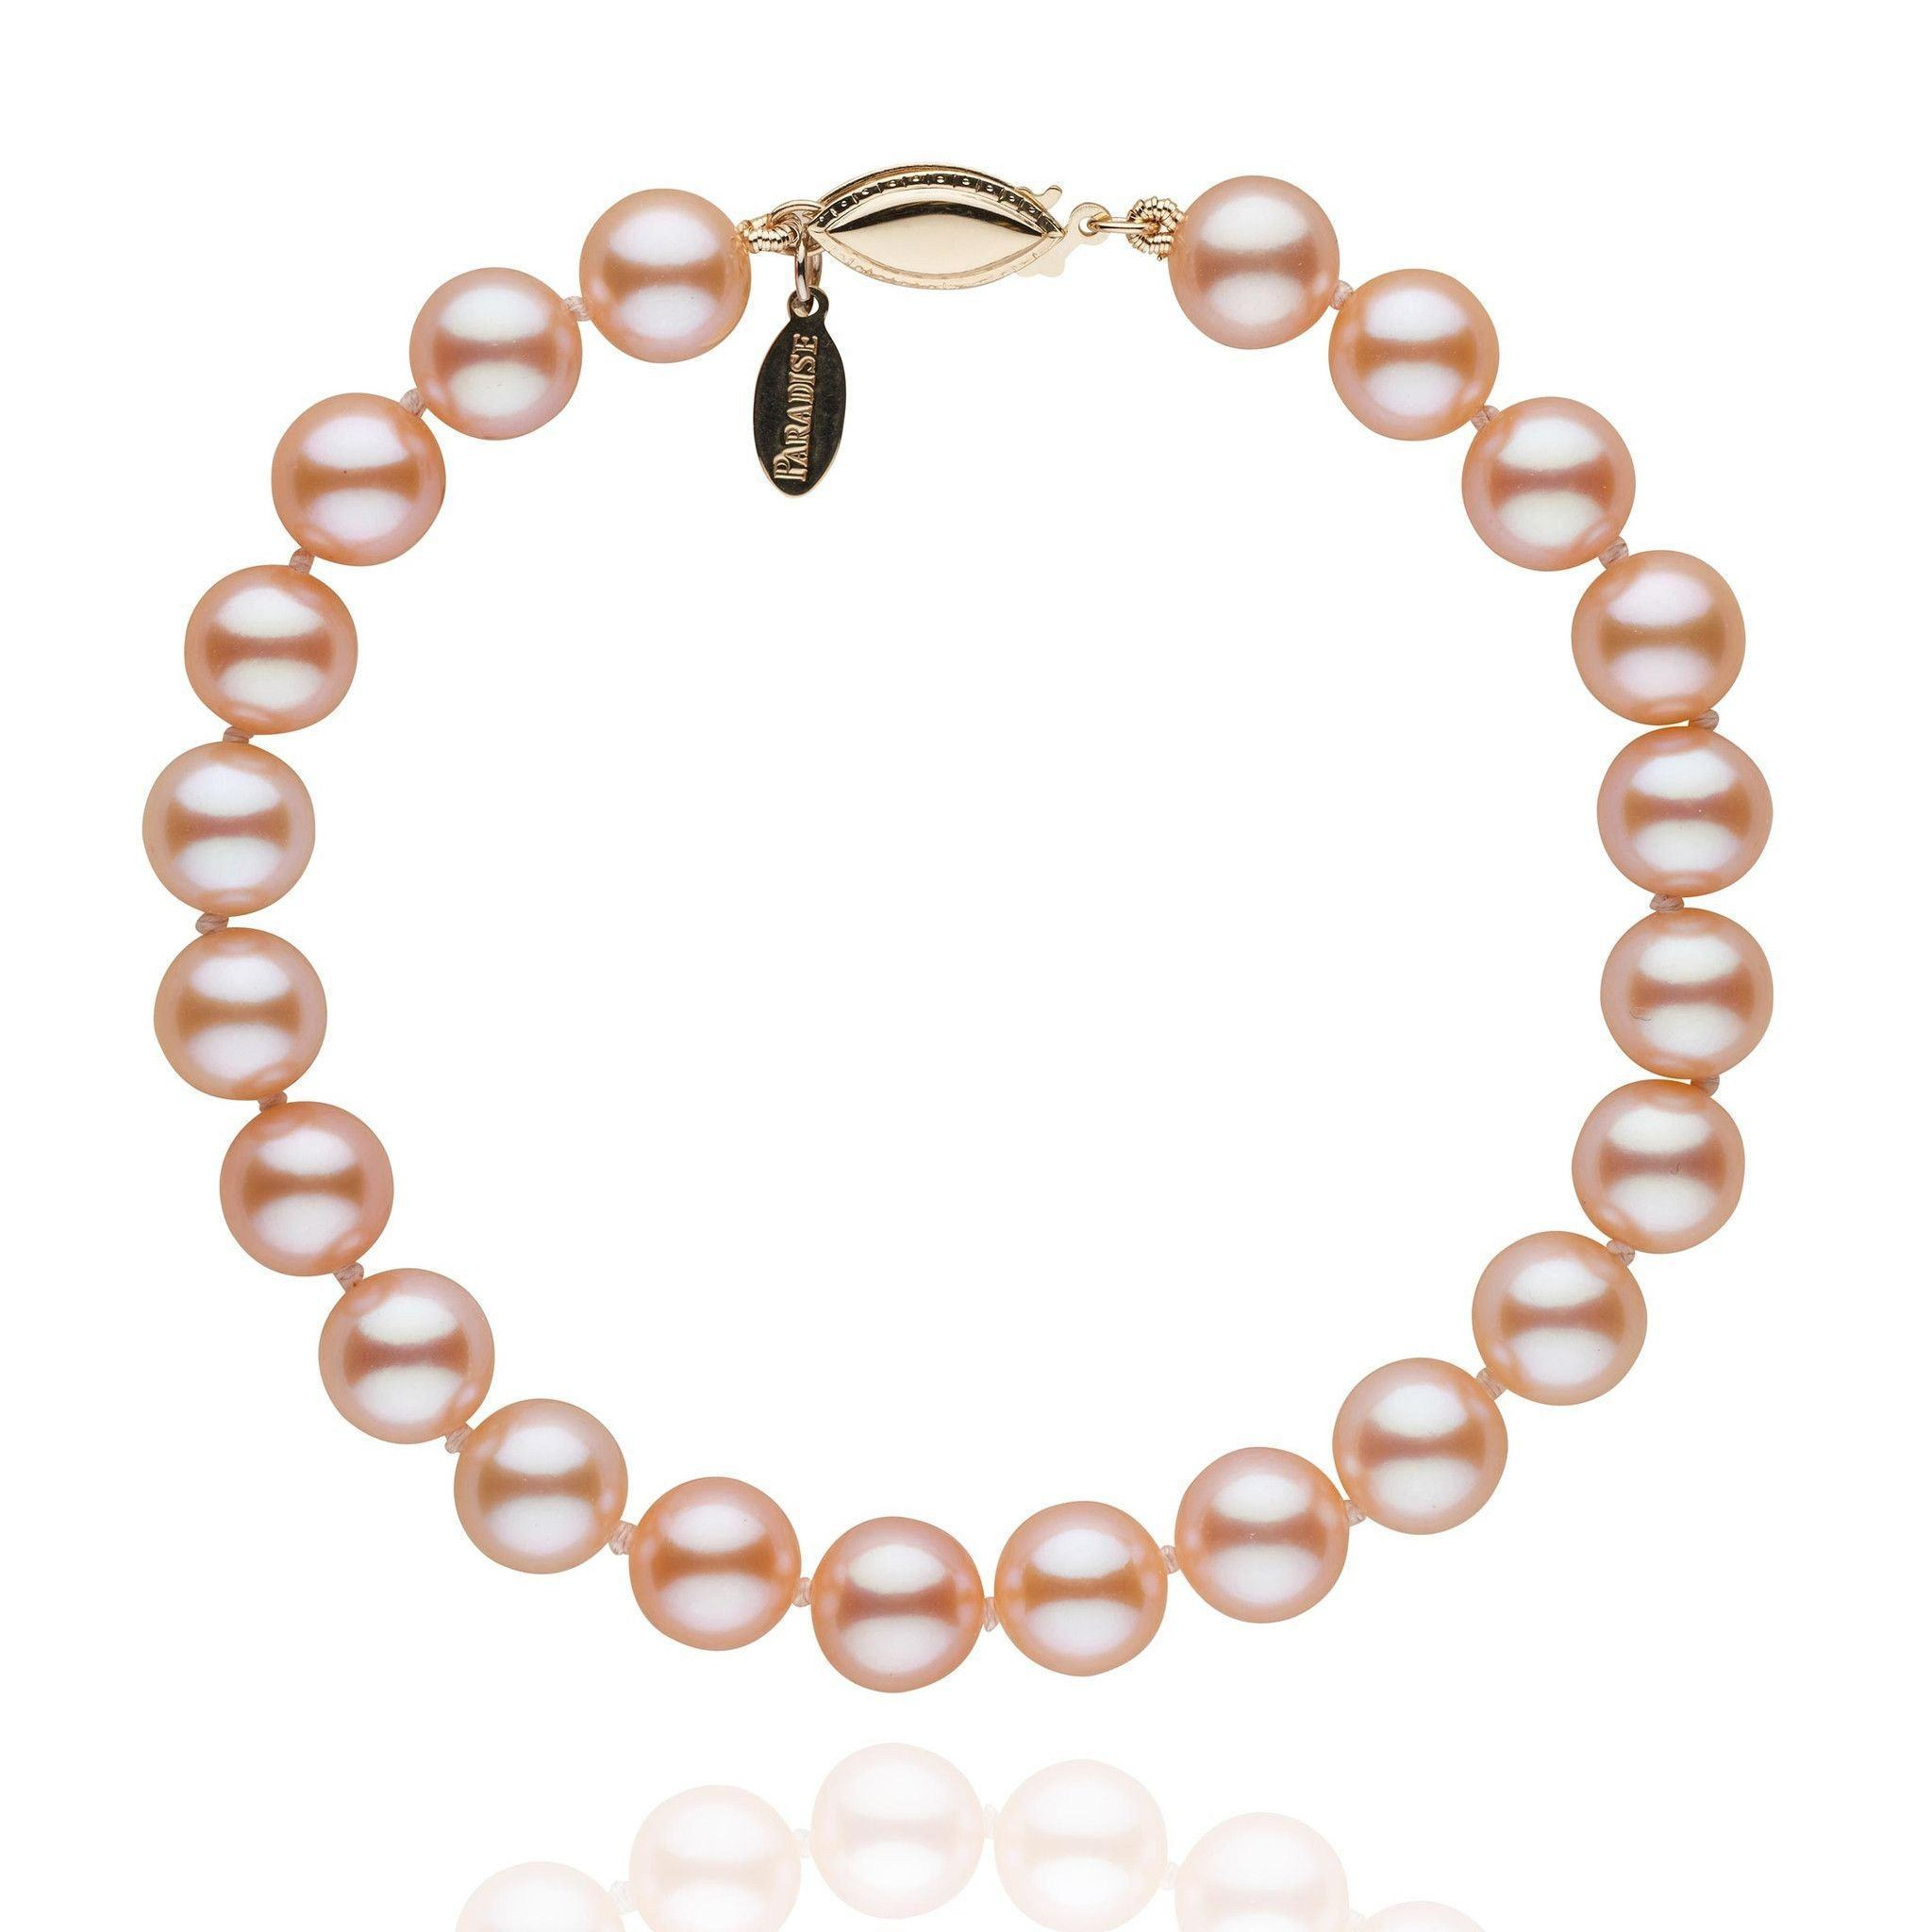 7.5-8.0 mm Pink to Peach Freshadama Pearl Bracelet